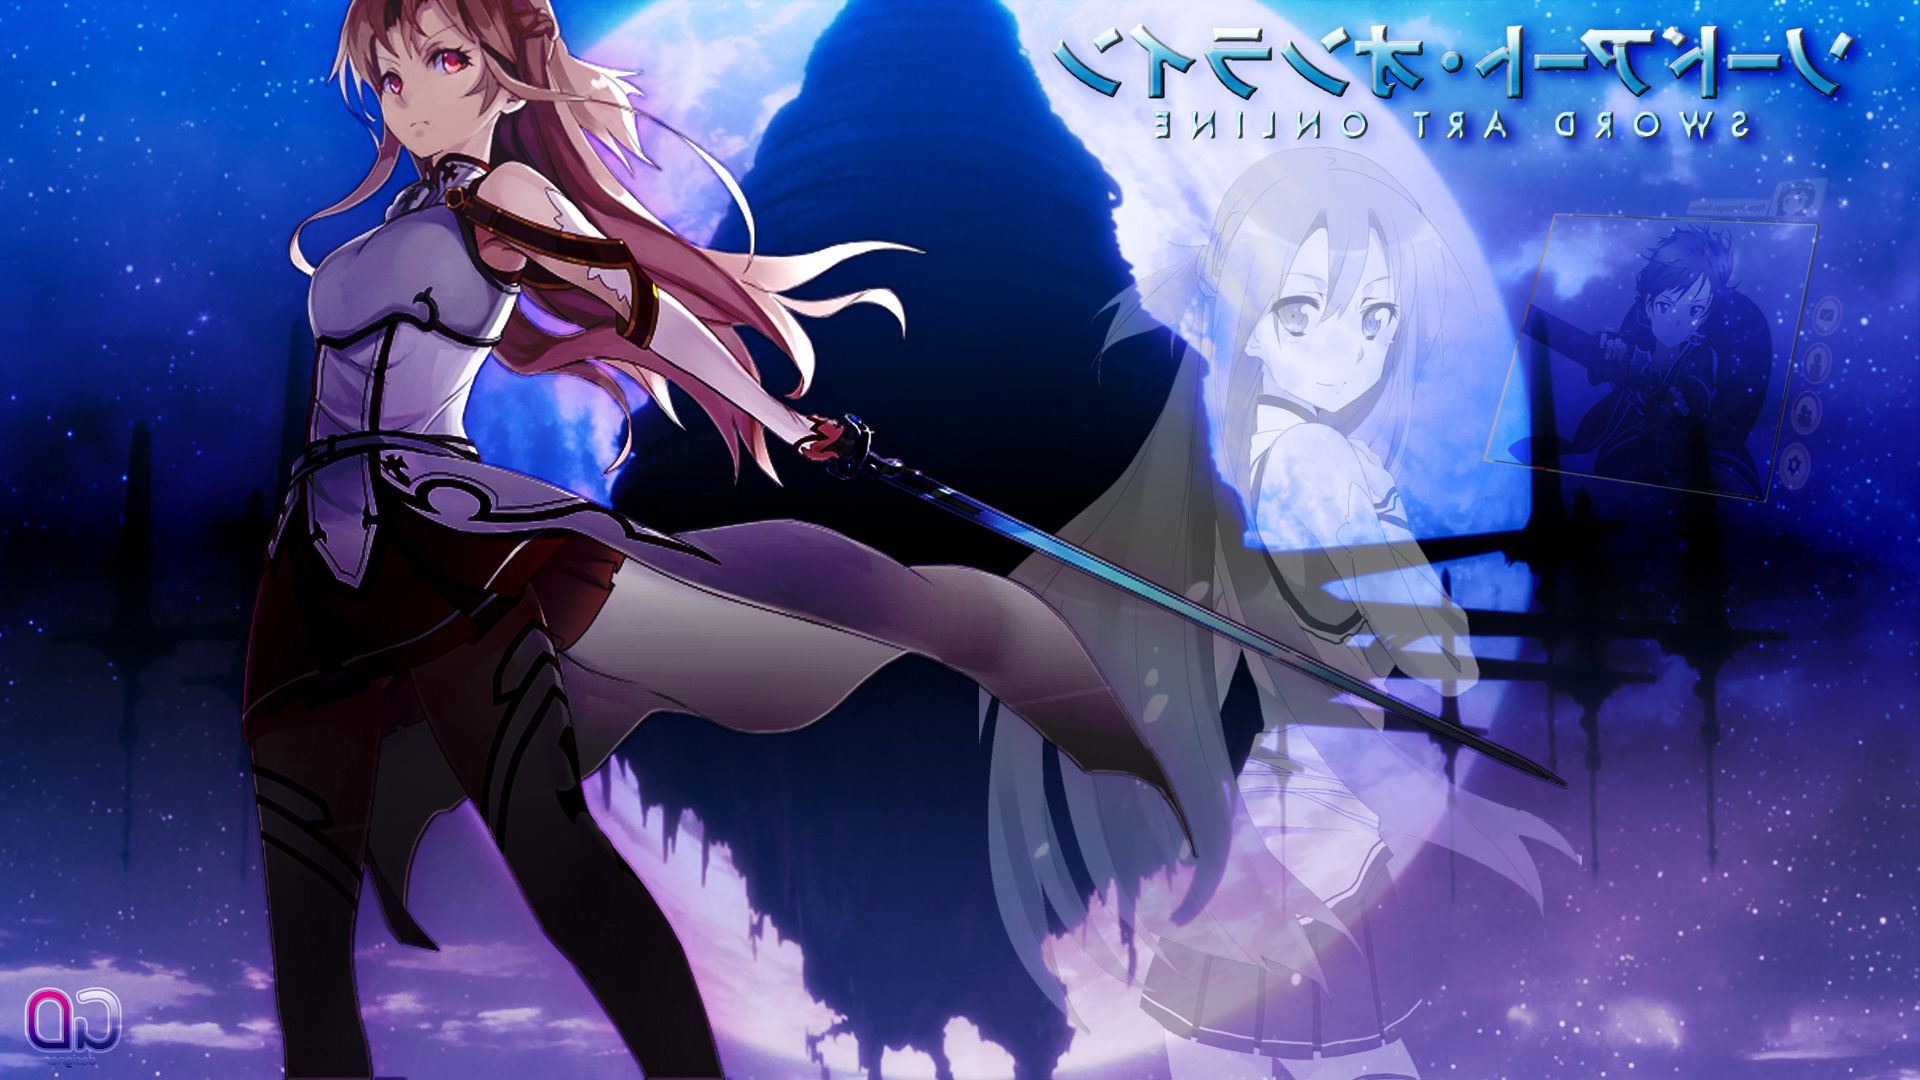 Photos Asuna Manga Sword Art Online Asuna Wallpaper Anime